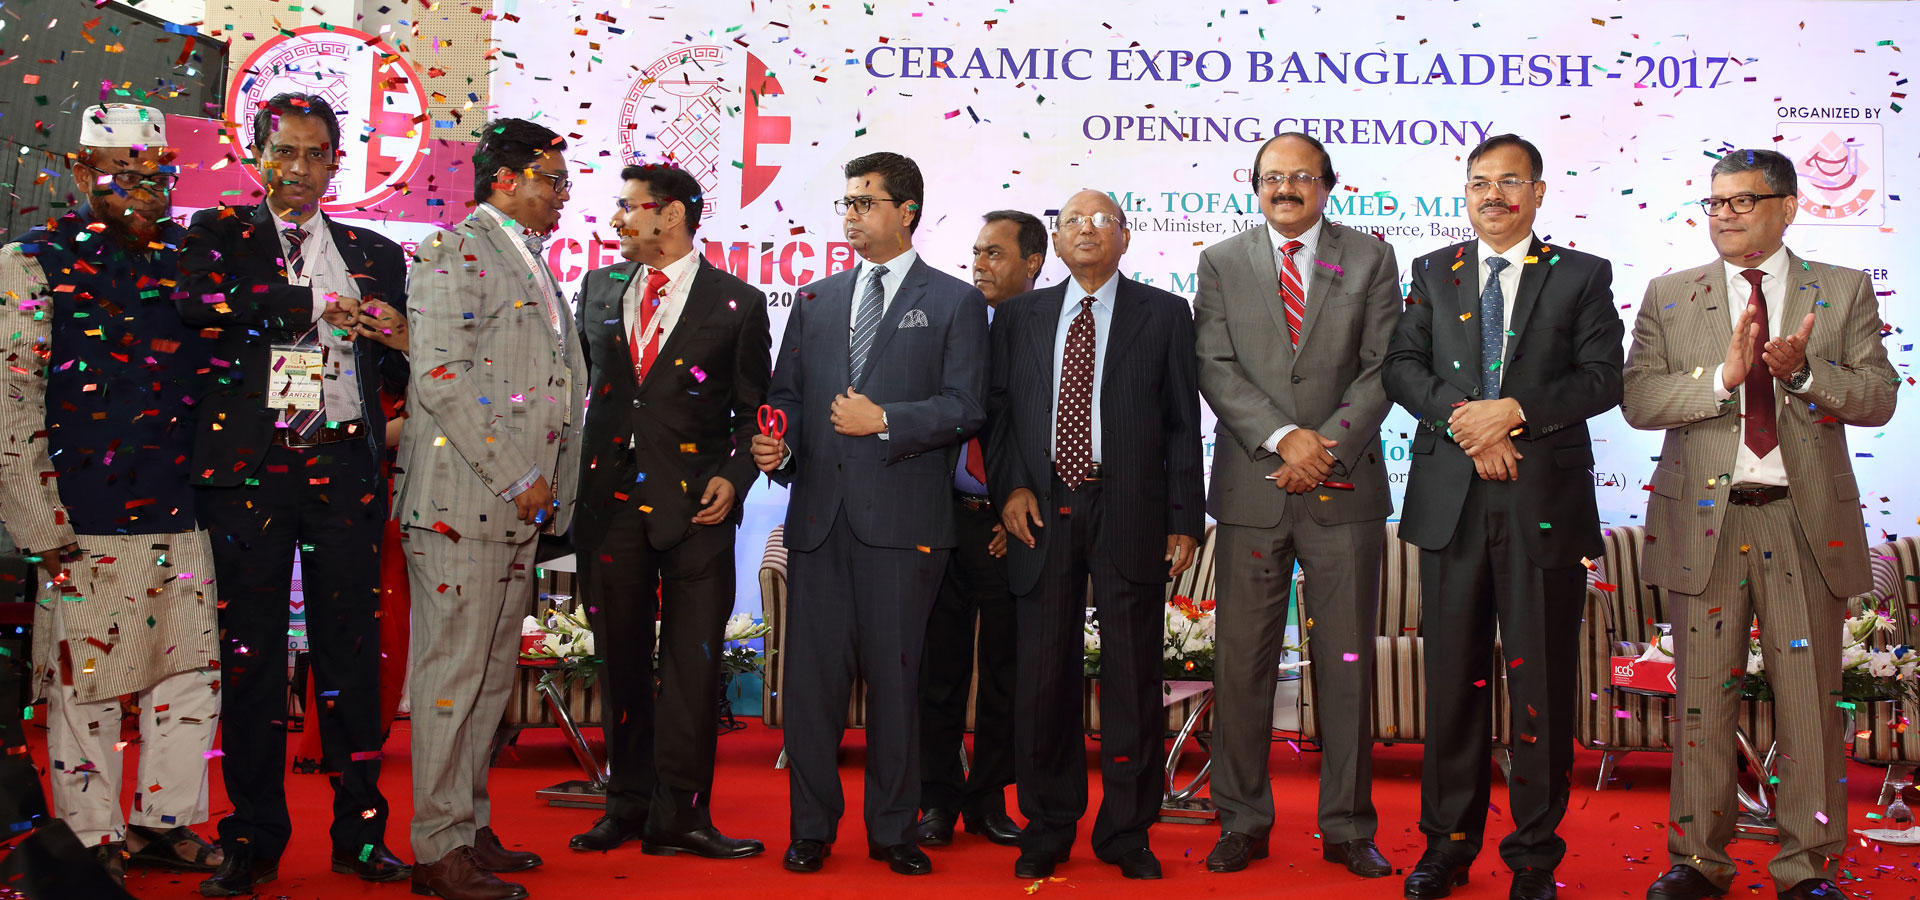 Ceramic Expo Bangladesh-2017-3